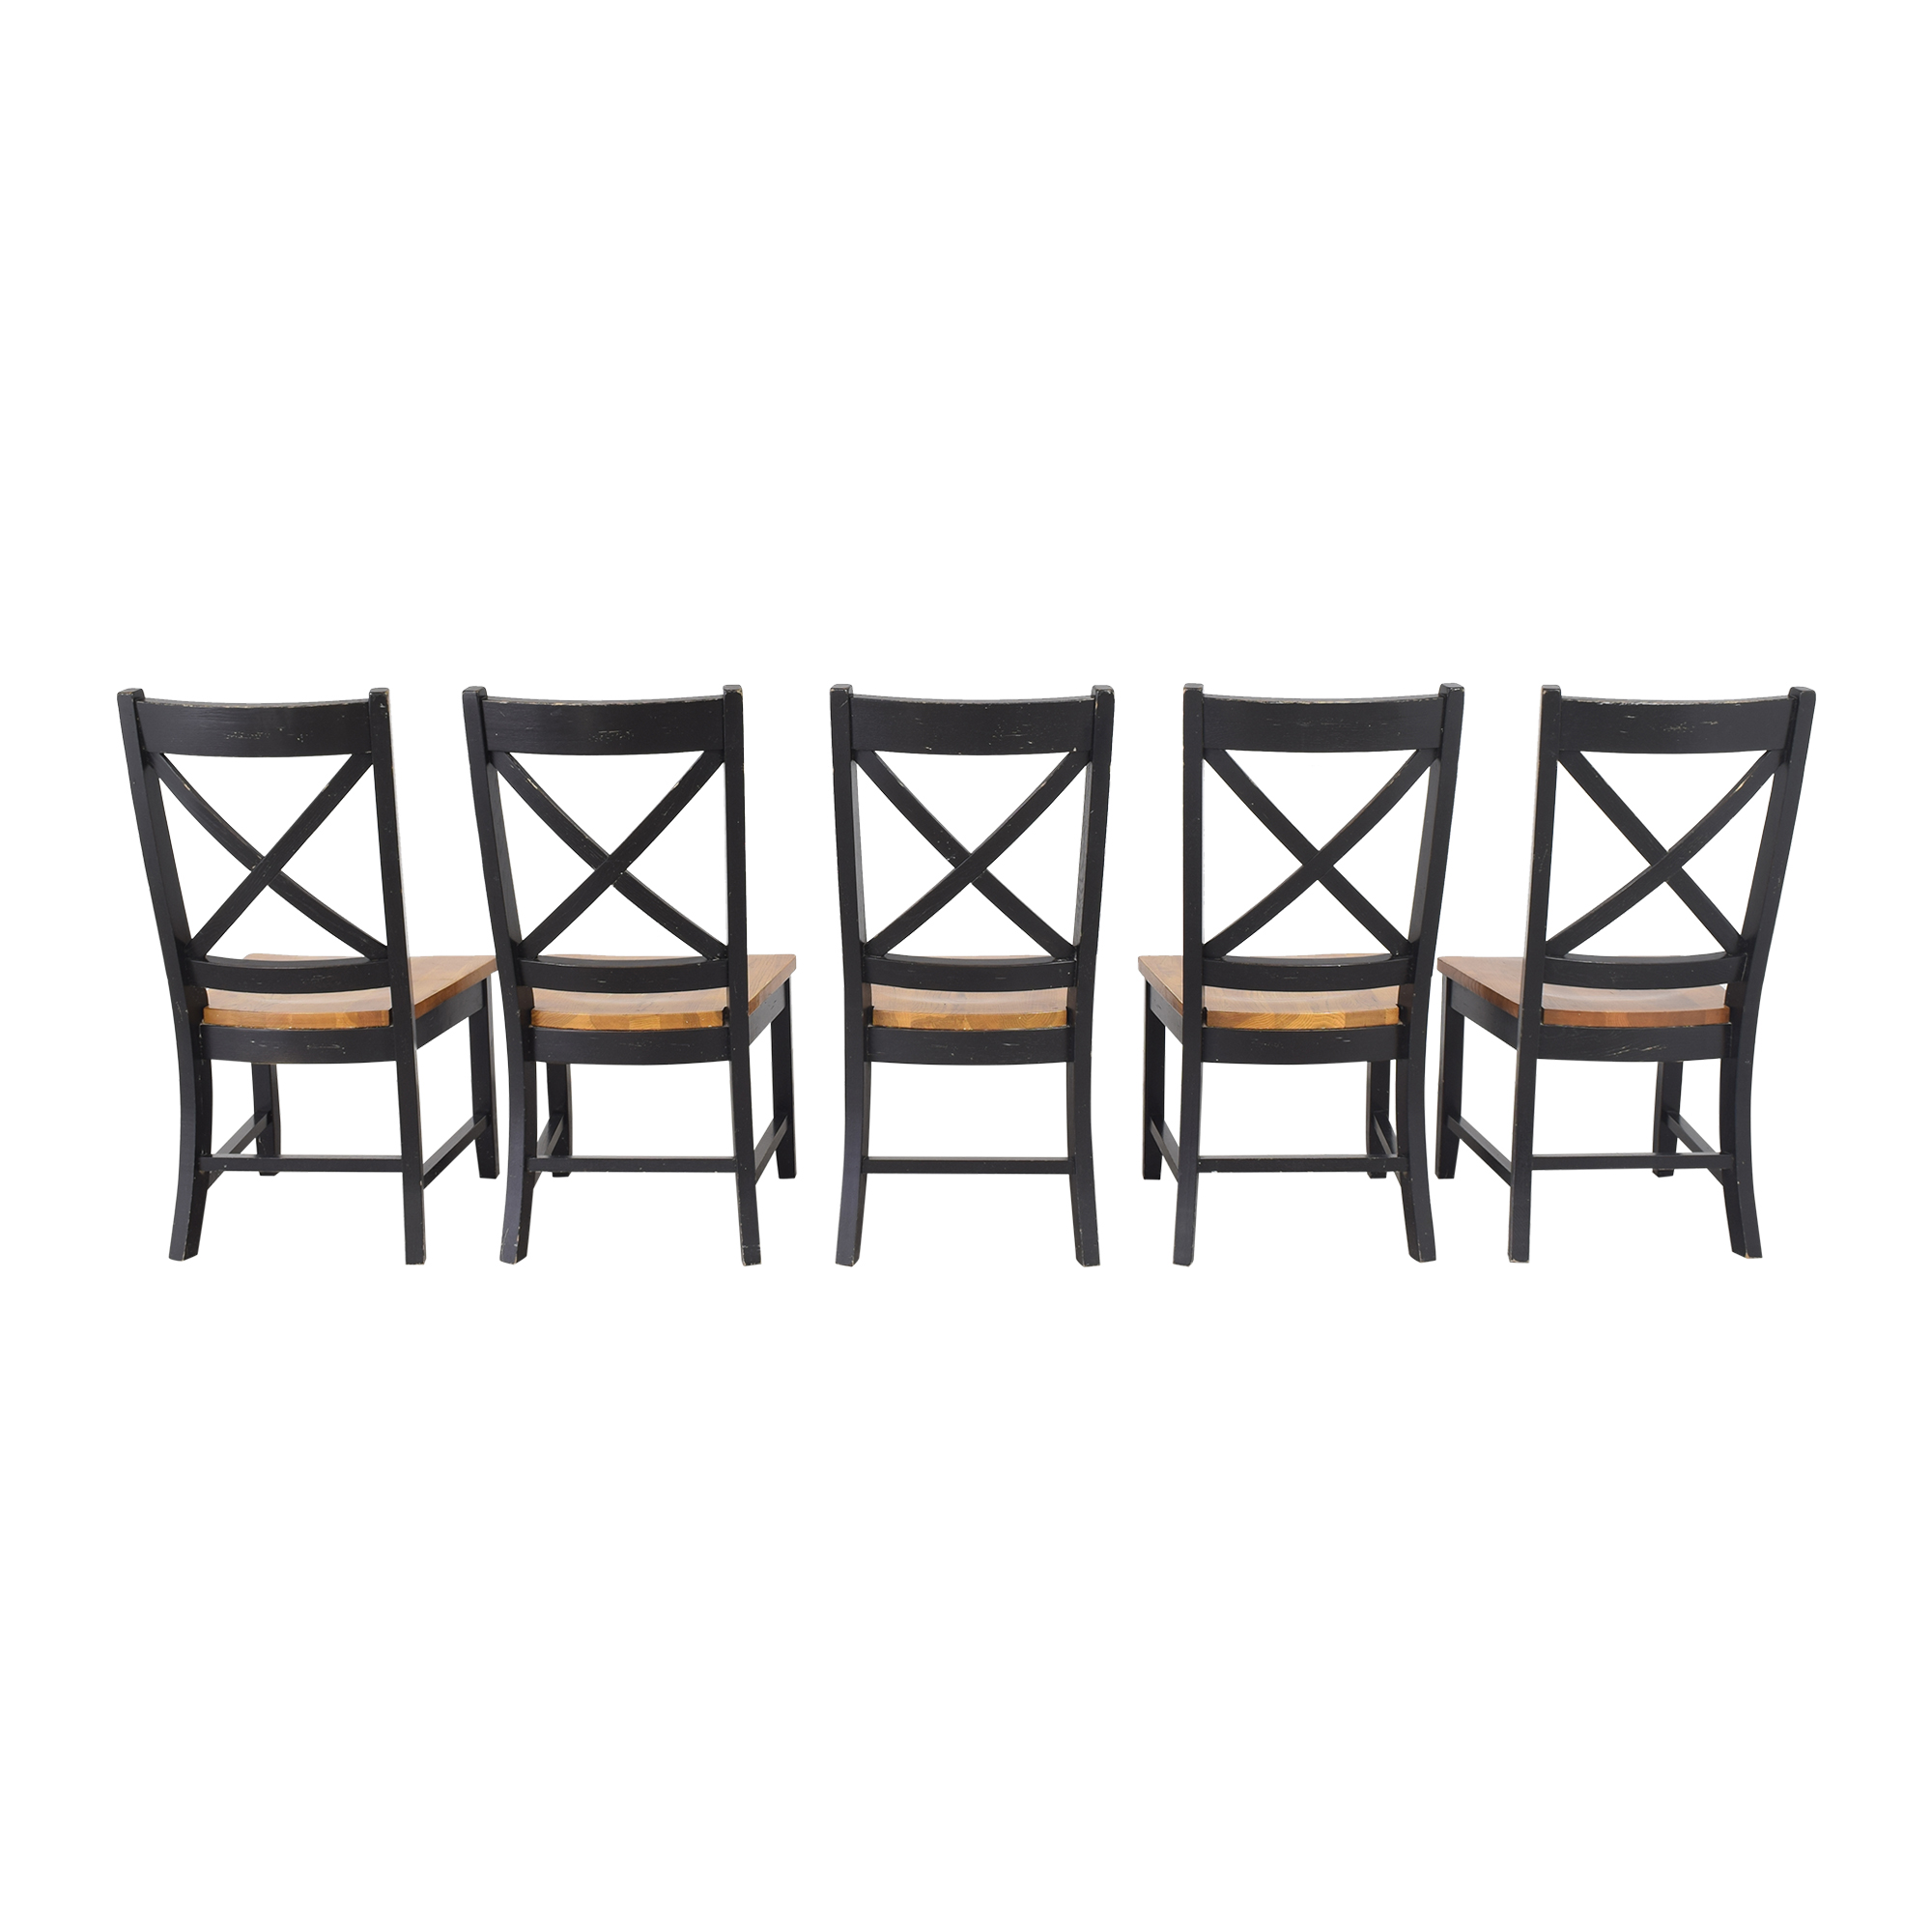 buy Havertys Timber Ridge Dining Chairs Havertys Chairs